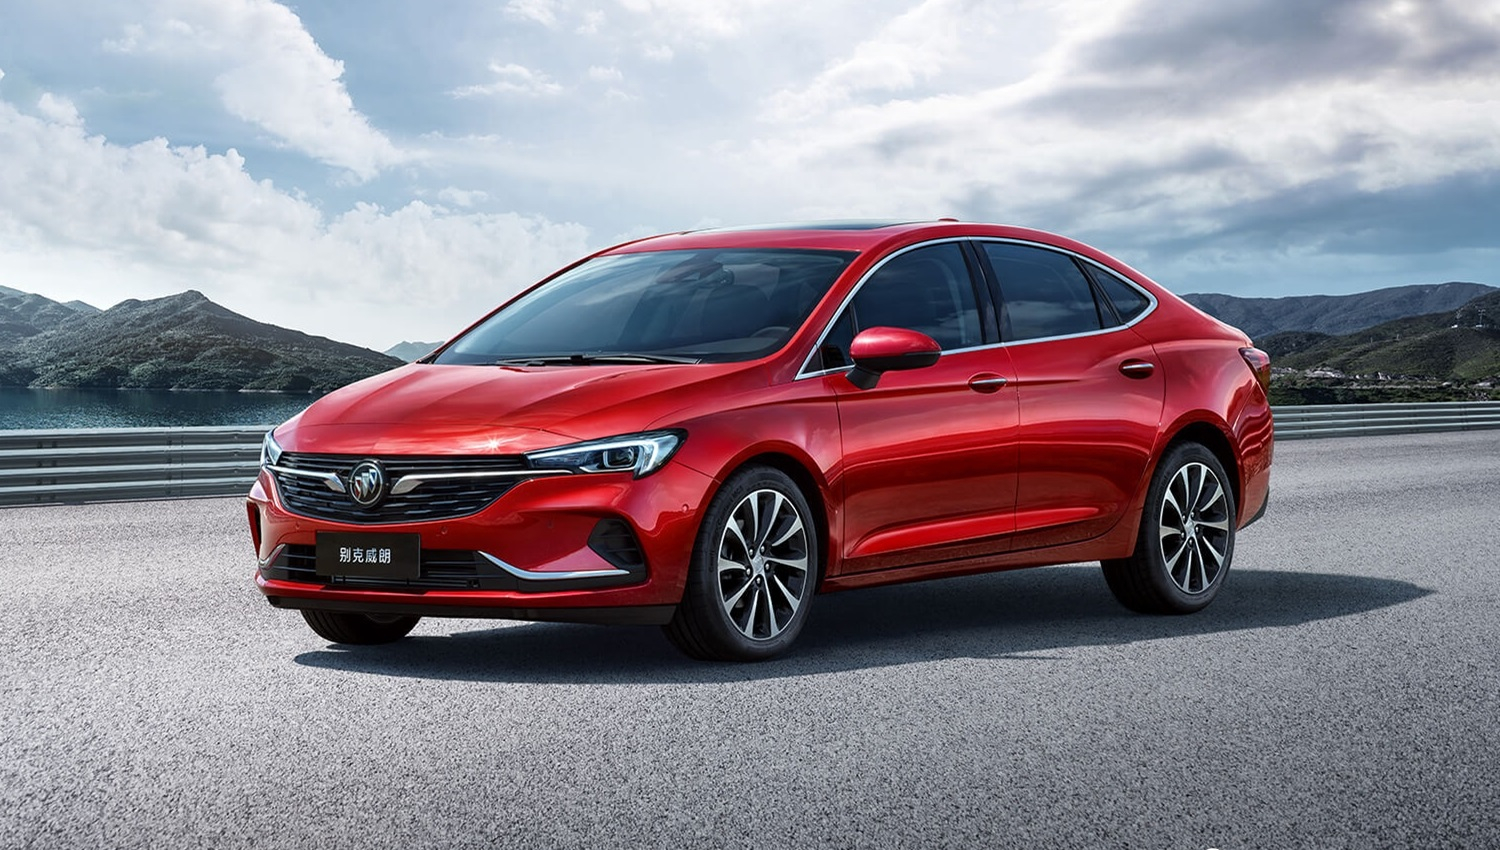 Gm Launches 2020 Buick Verano Refresh In China | Gm Authority New 2022 Buick Verano Pictures, Headlights, Horsepower